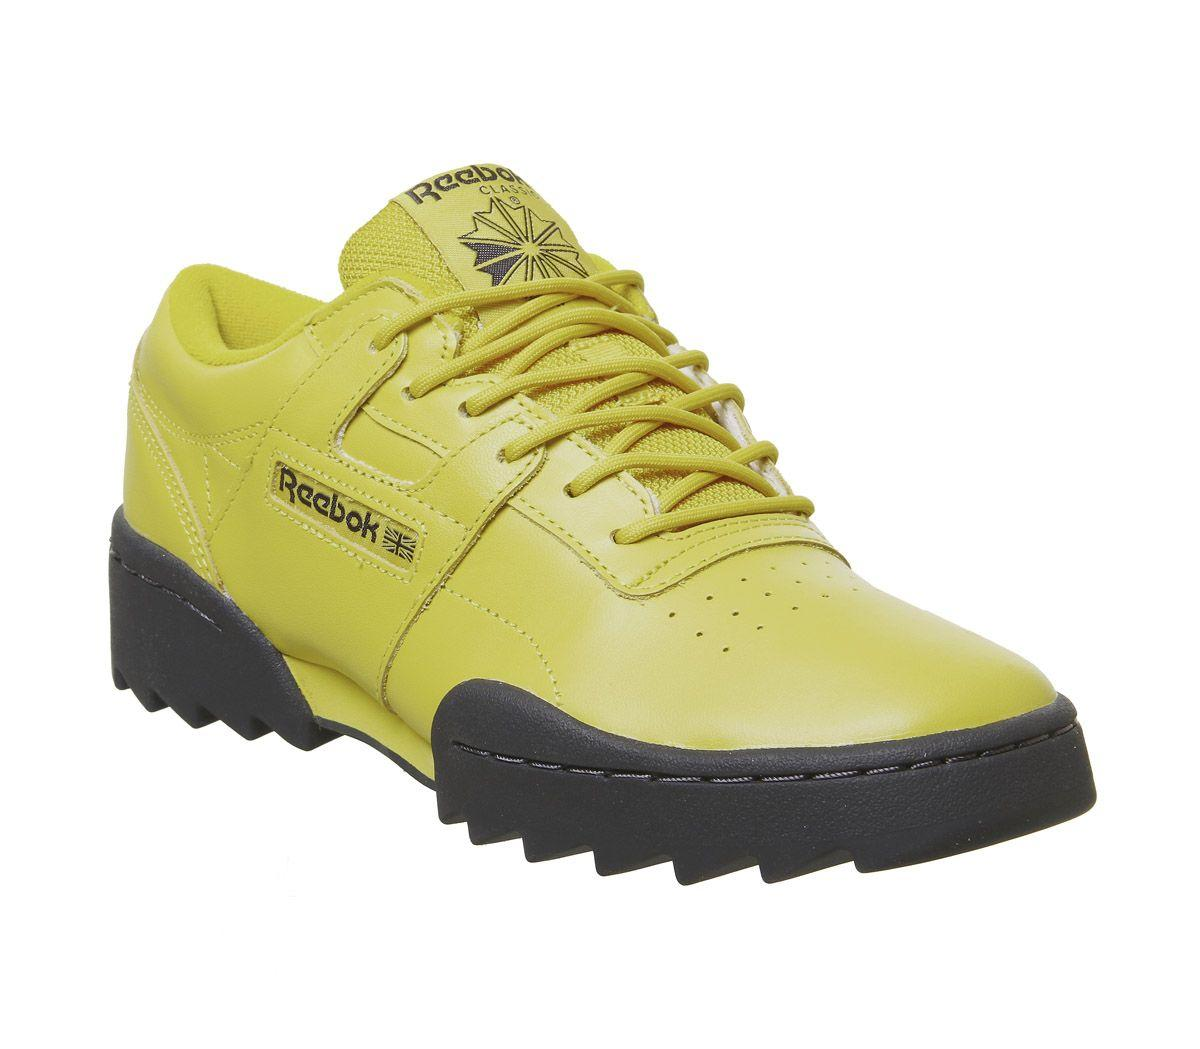 15710c022fb1e Lyst - Reebok Workout Ripple Trainers in Yellow for Men